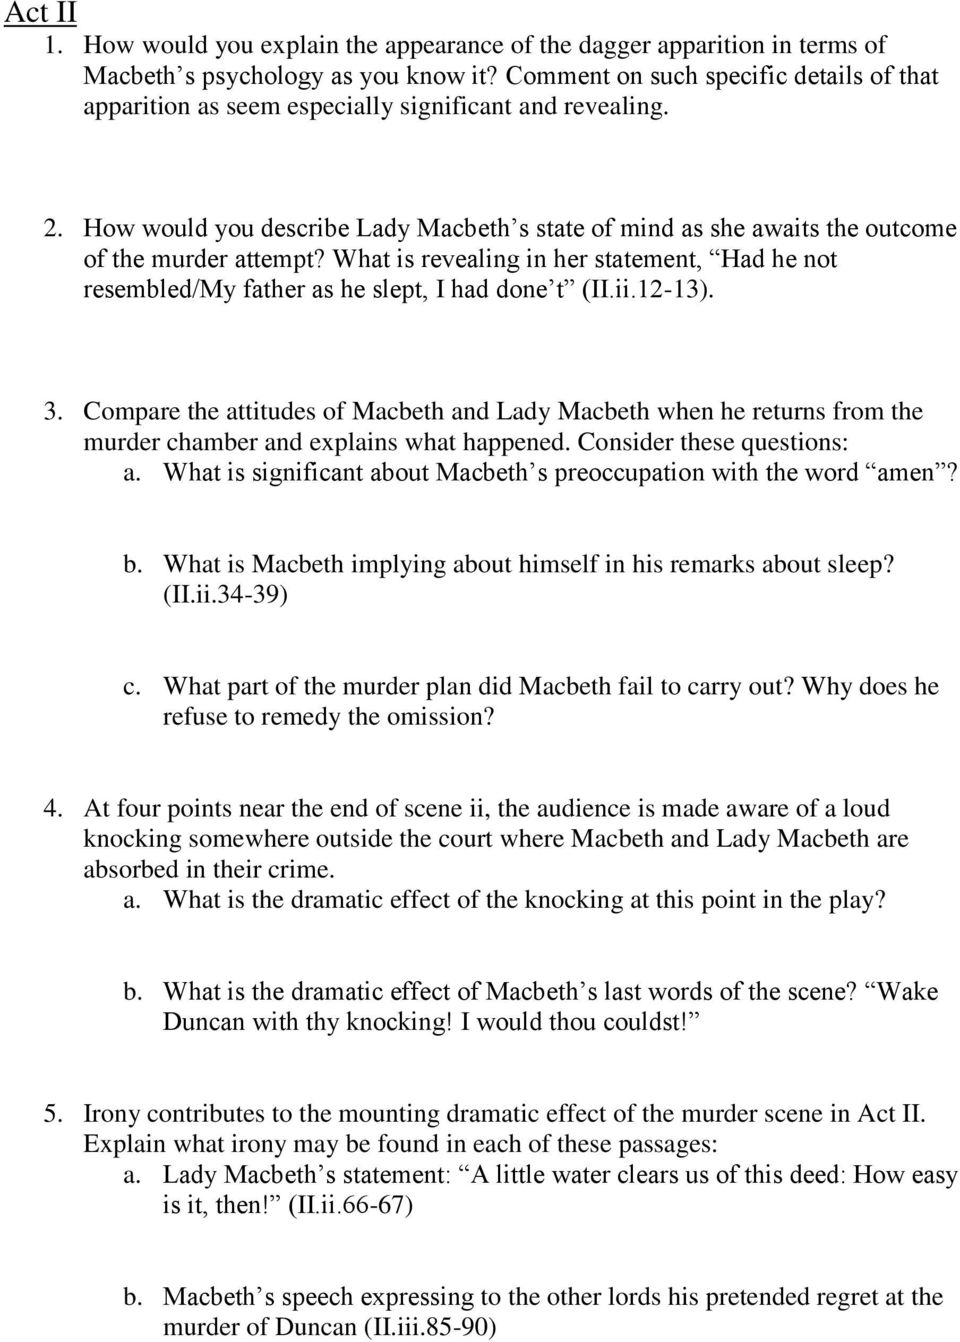 macbeth study guide questions pdf how would you describe lady macbeth s state of mind as she awaits the outcome of